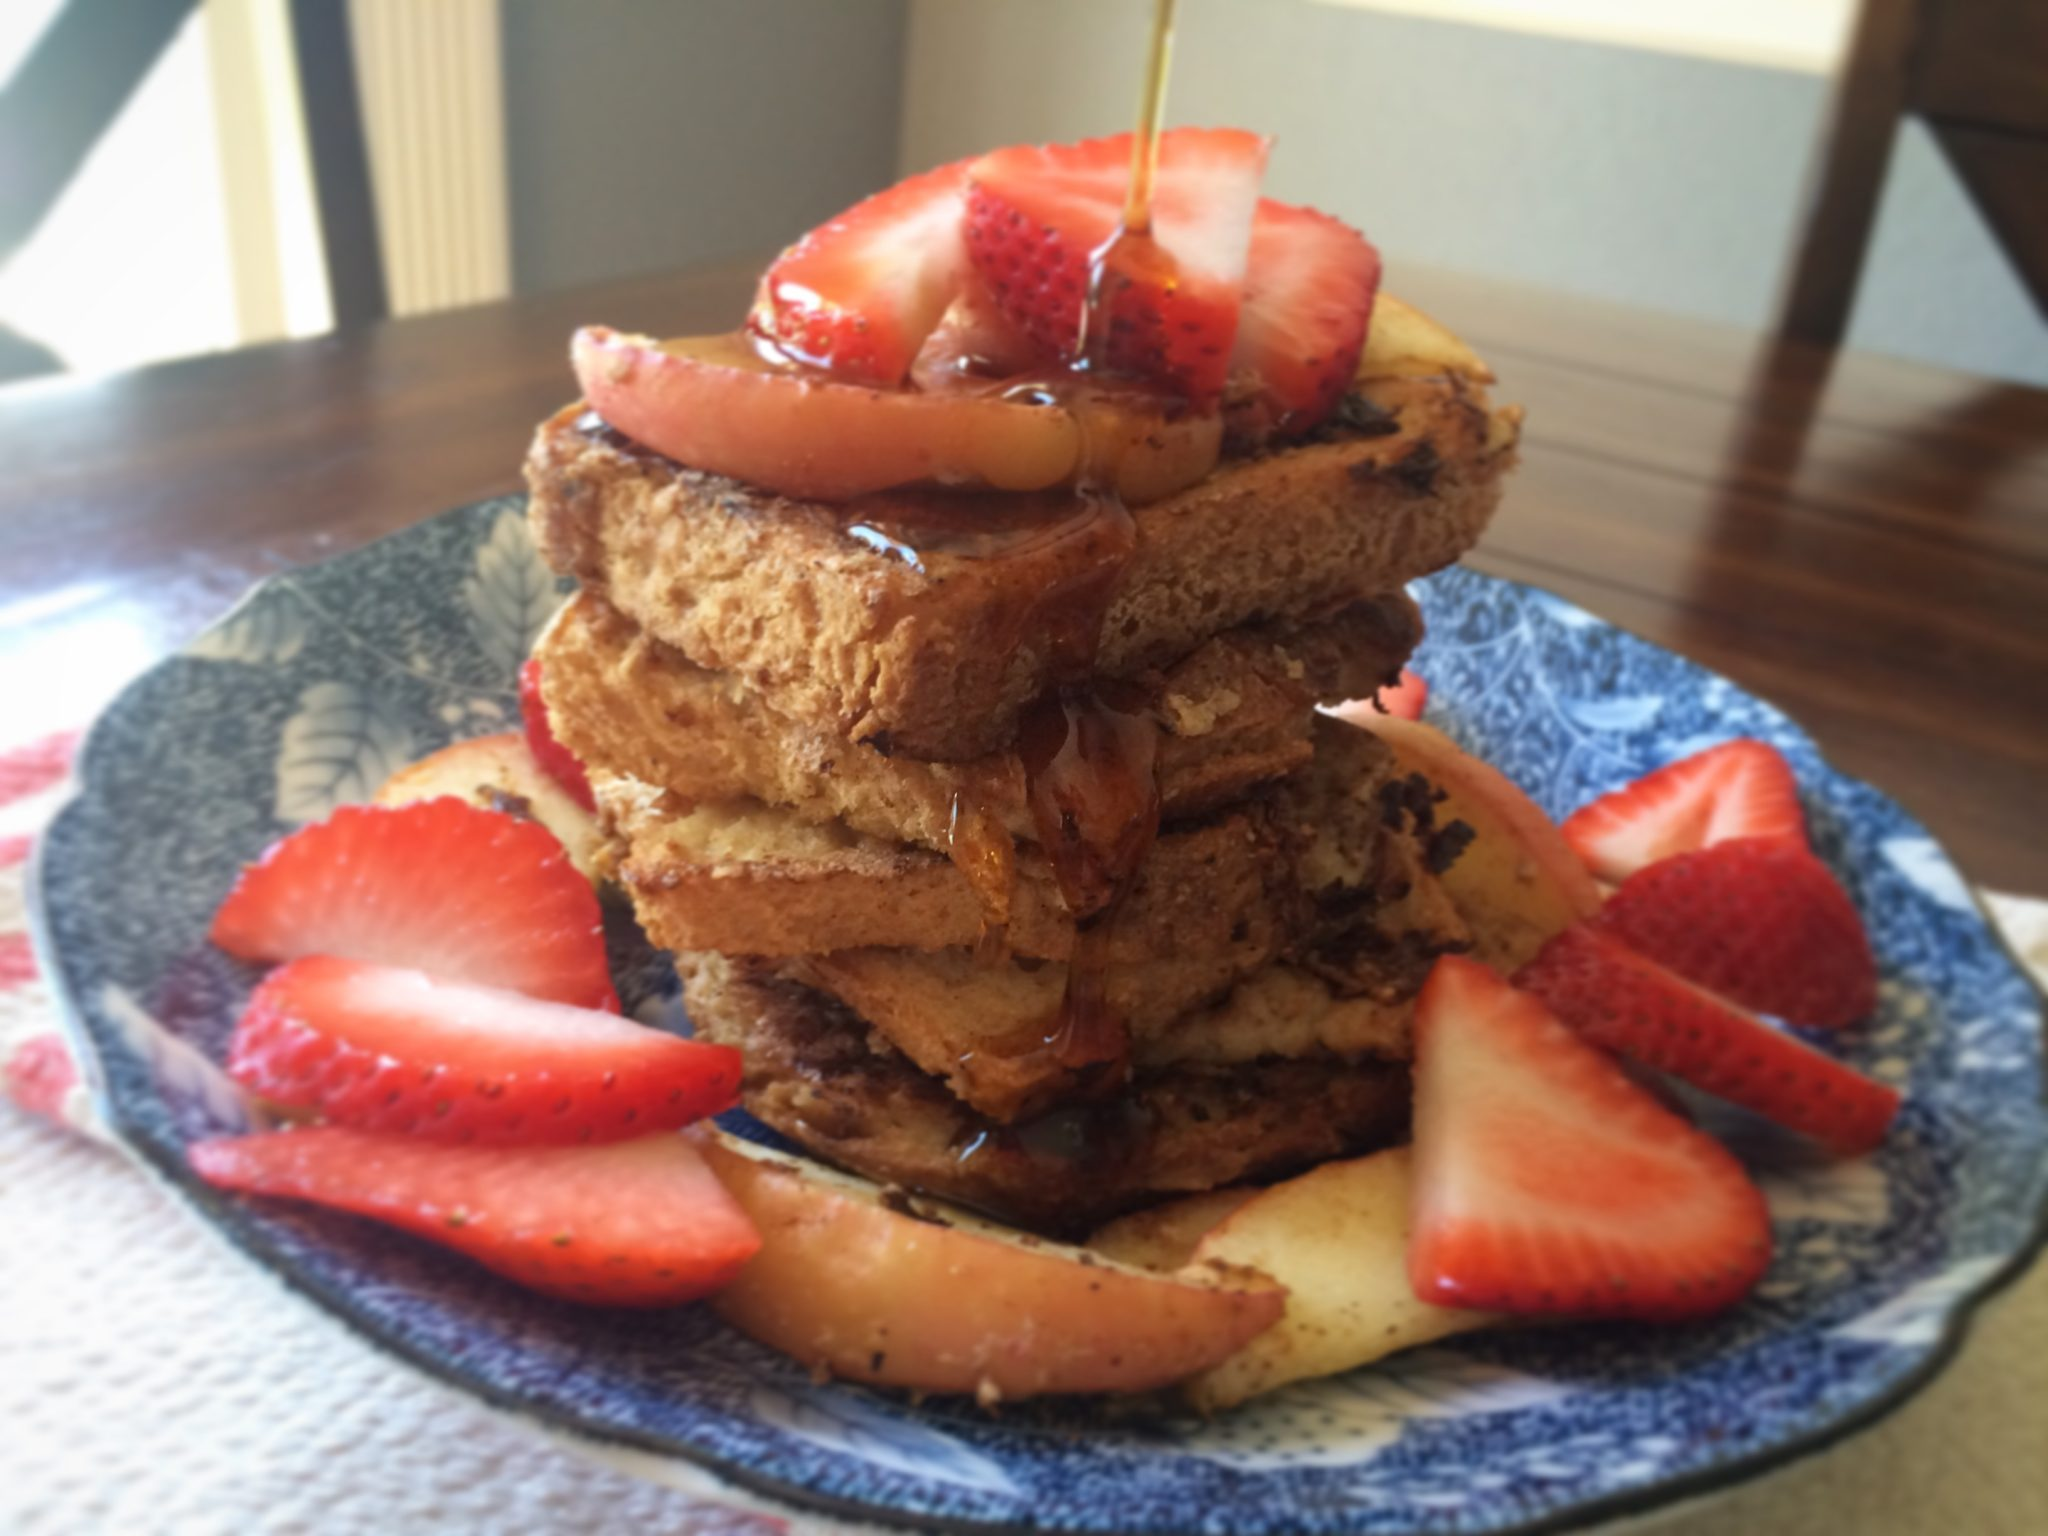 Saturday Morning Sourdough French Toast